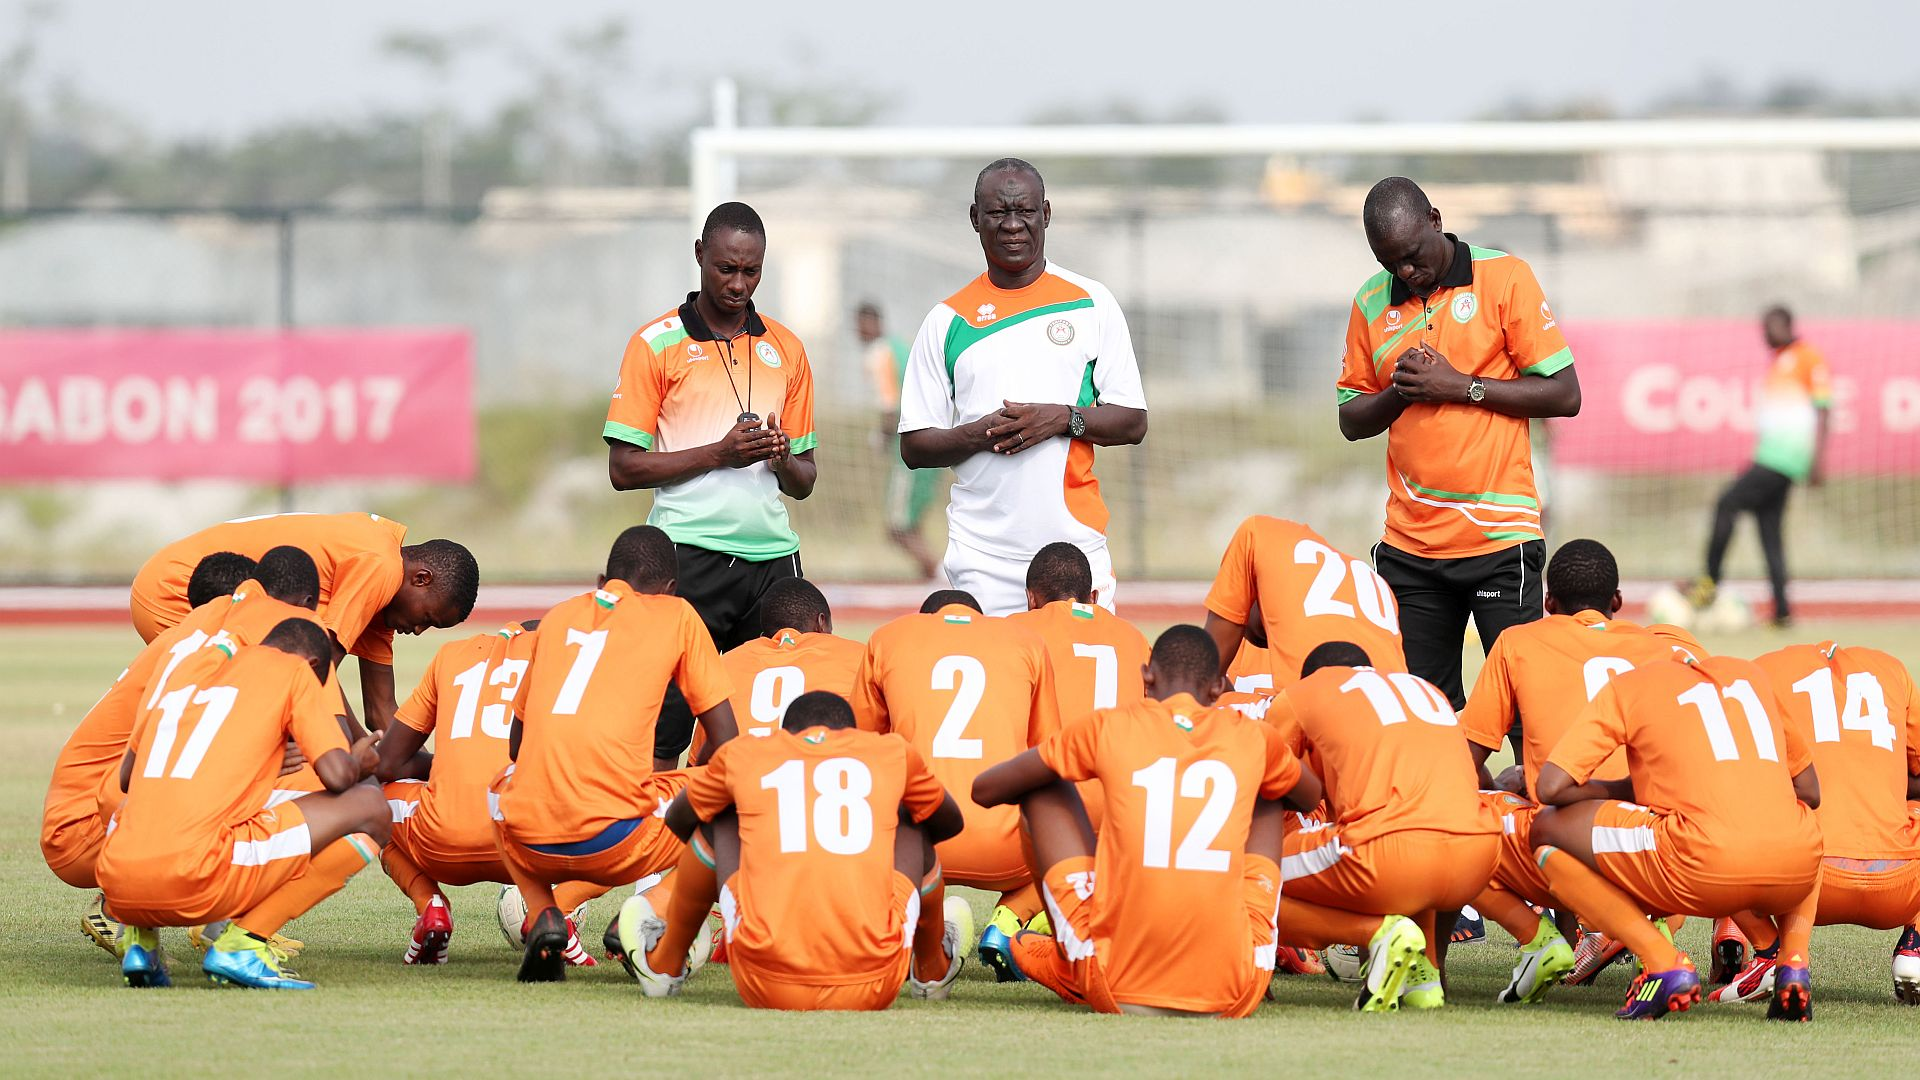 Ekpo urges Eagles not to be distracted — Federation Internationale de Football Association ranking